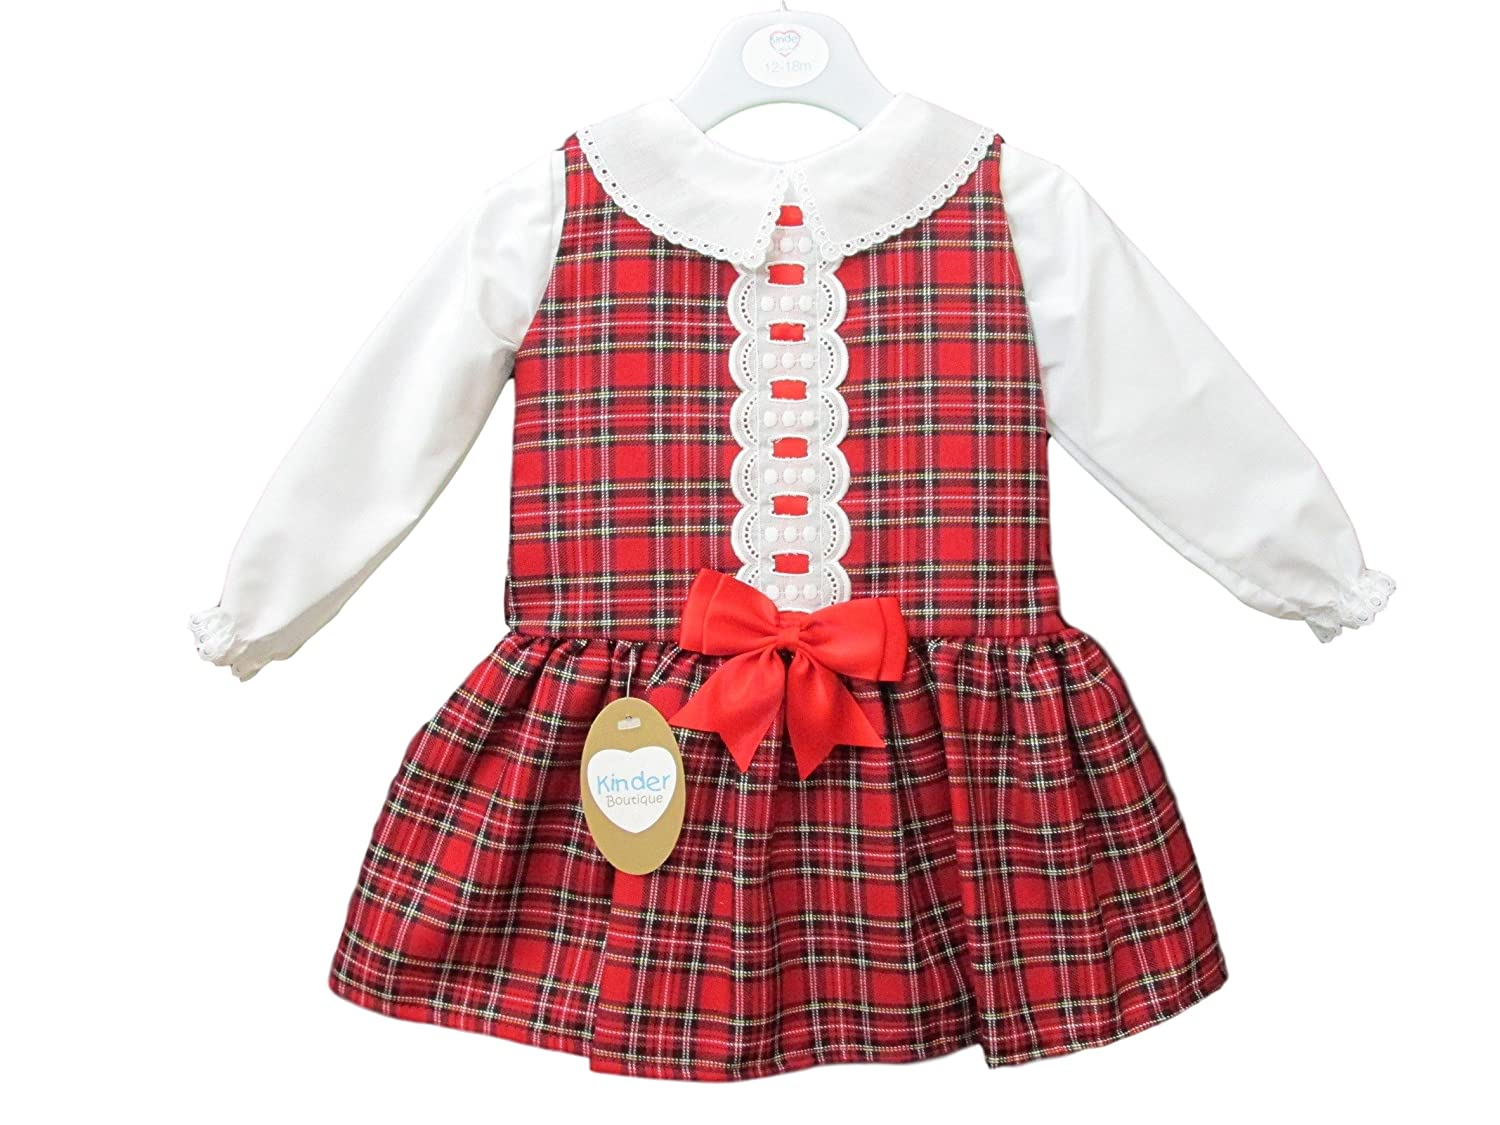 ece2d4a38 Girls Red Tartan Bow Dress And Blouse Set (18 24 Months)  Amazon.co ...